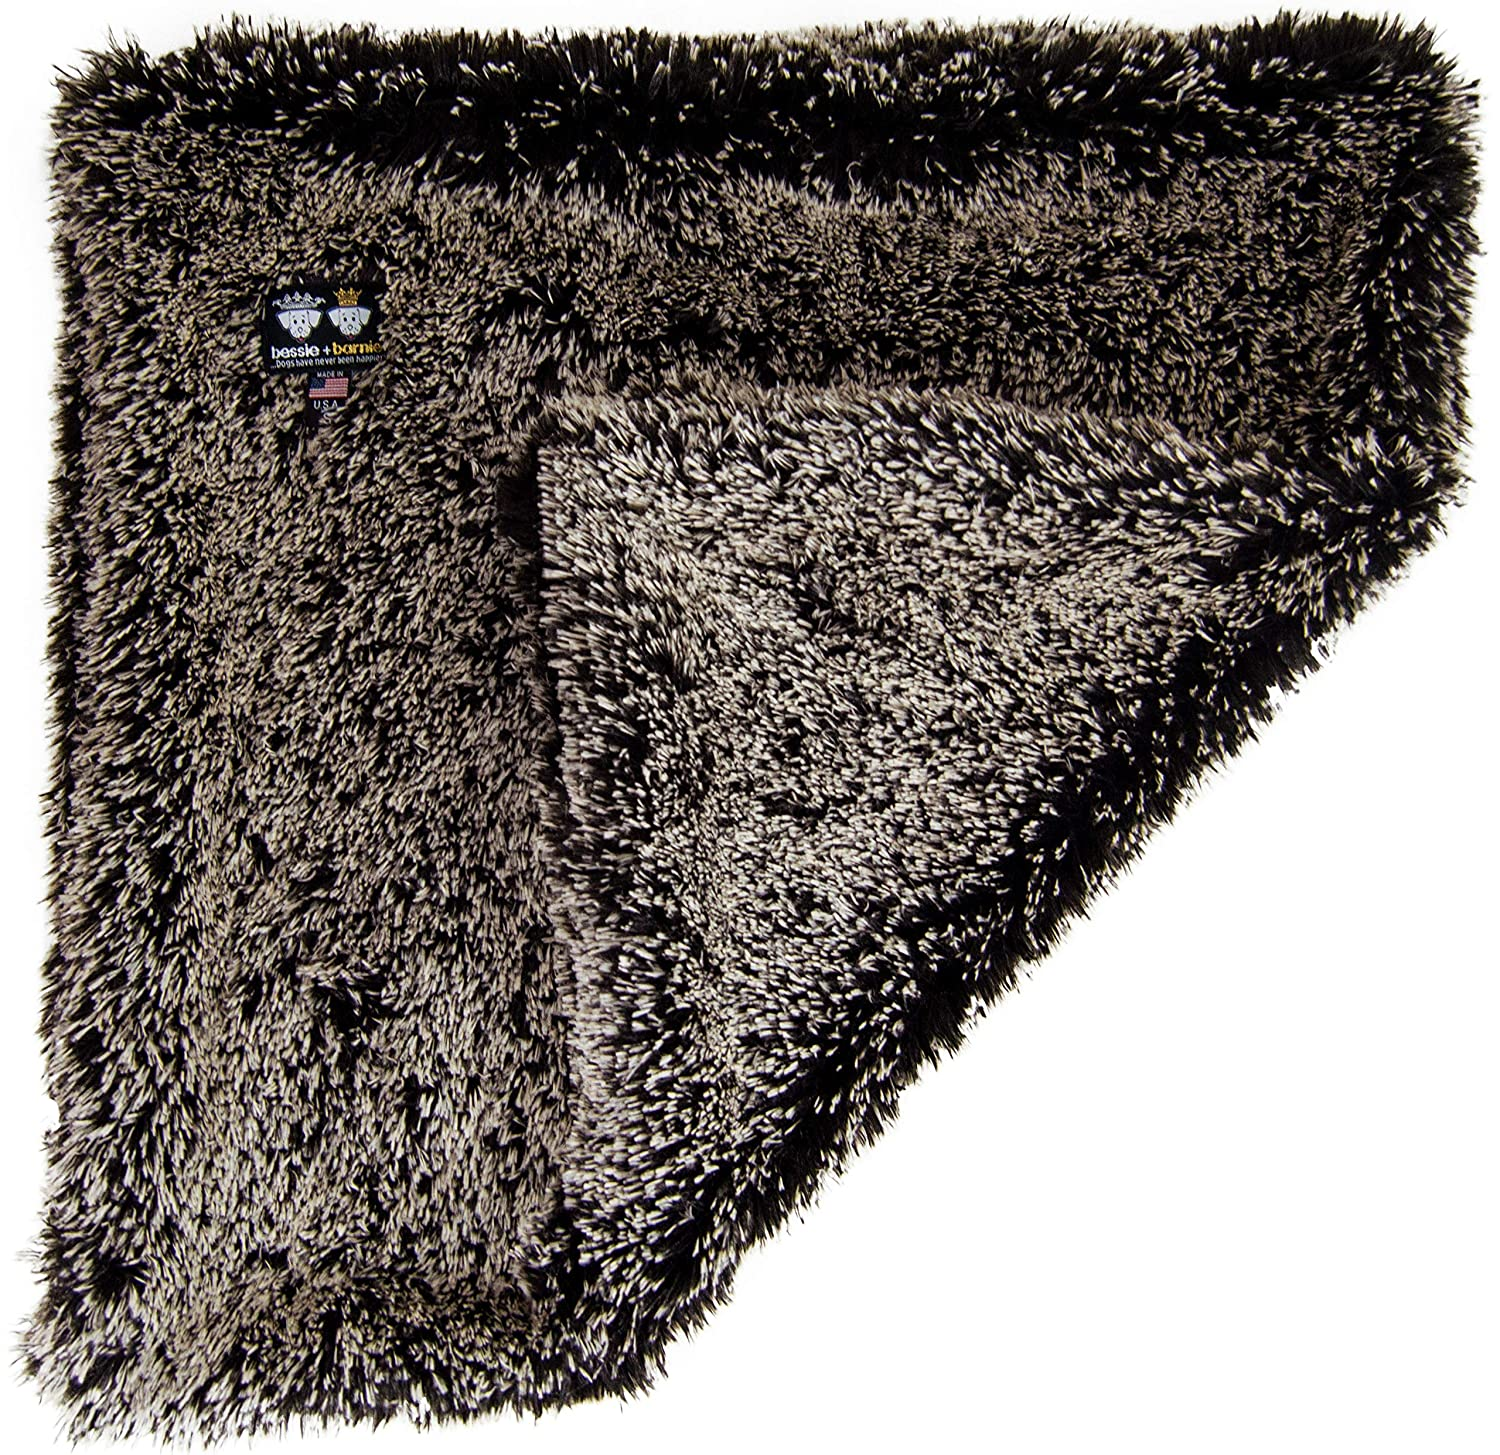 Bessie and Barnie Frosted Willow Luxury Shag Ultra Plush Faux Fur Pet, Dog, Cat, Puppy Super Soft Reversible Blanket (Multiple Sizes) BLNKT-FDWW-SM-NR